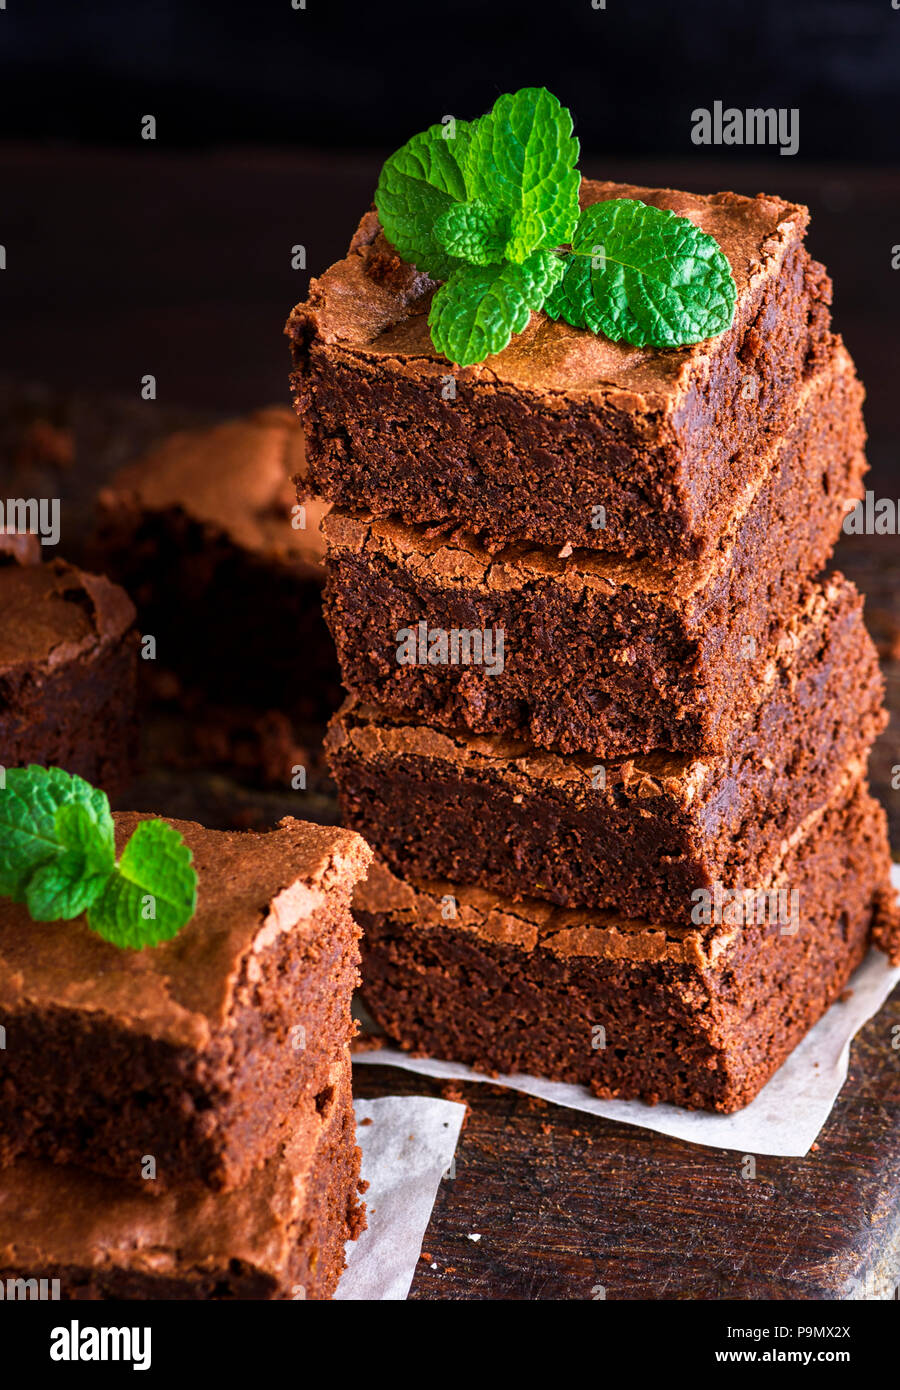 Baked square pieces of chocolate brownie pie are stacked, on top of a green sprig of mint - Stock Image